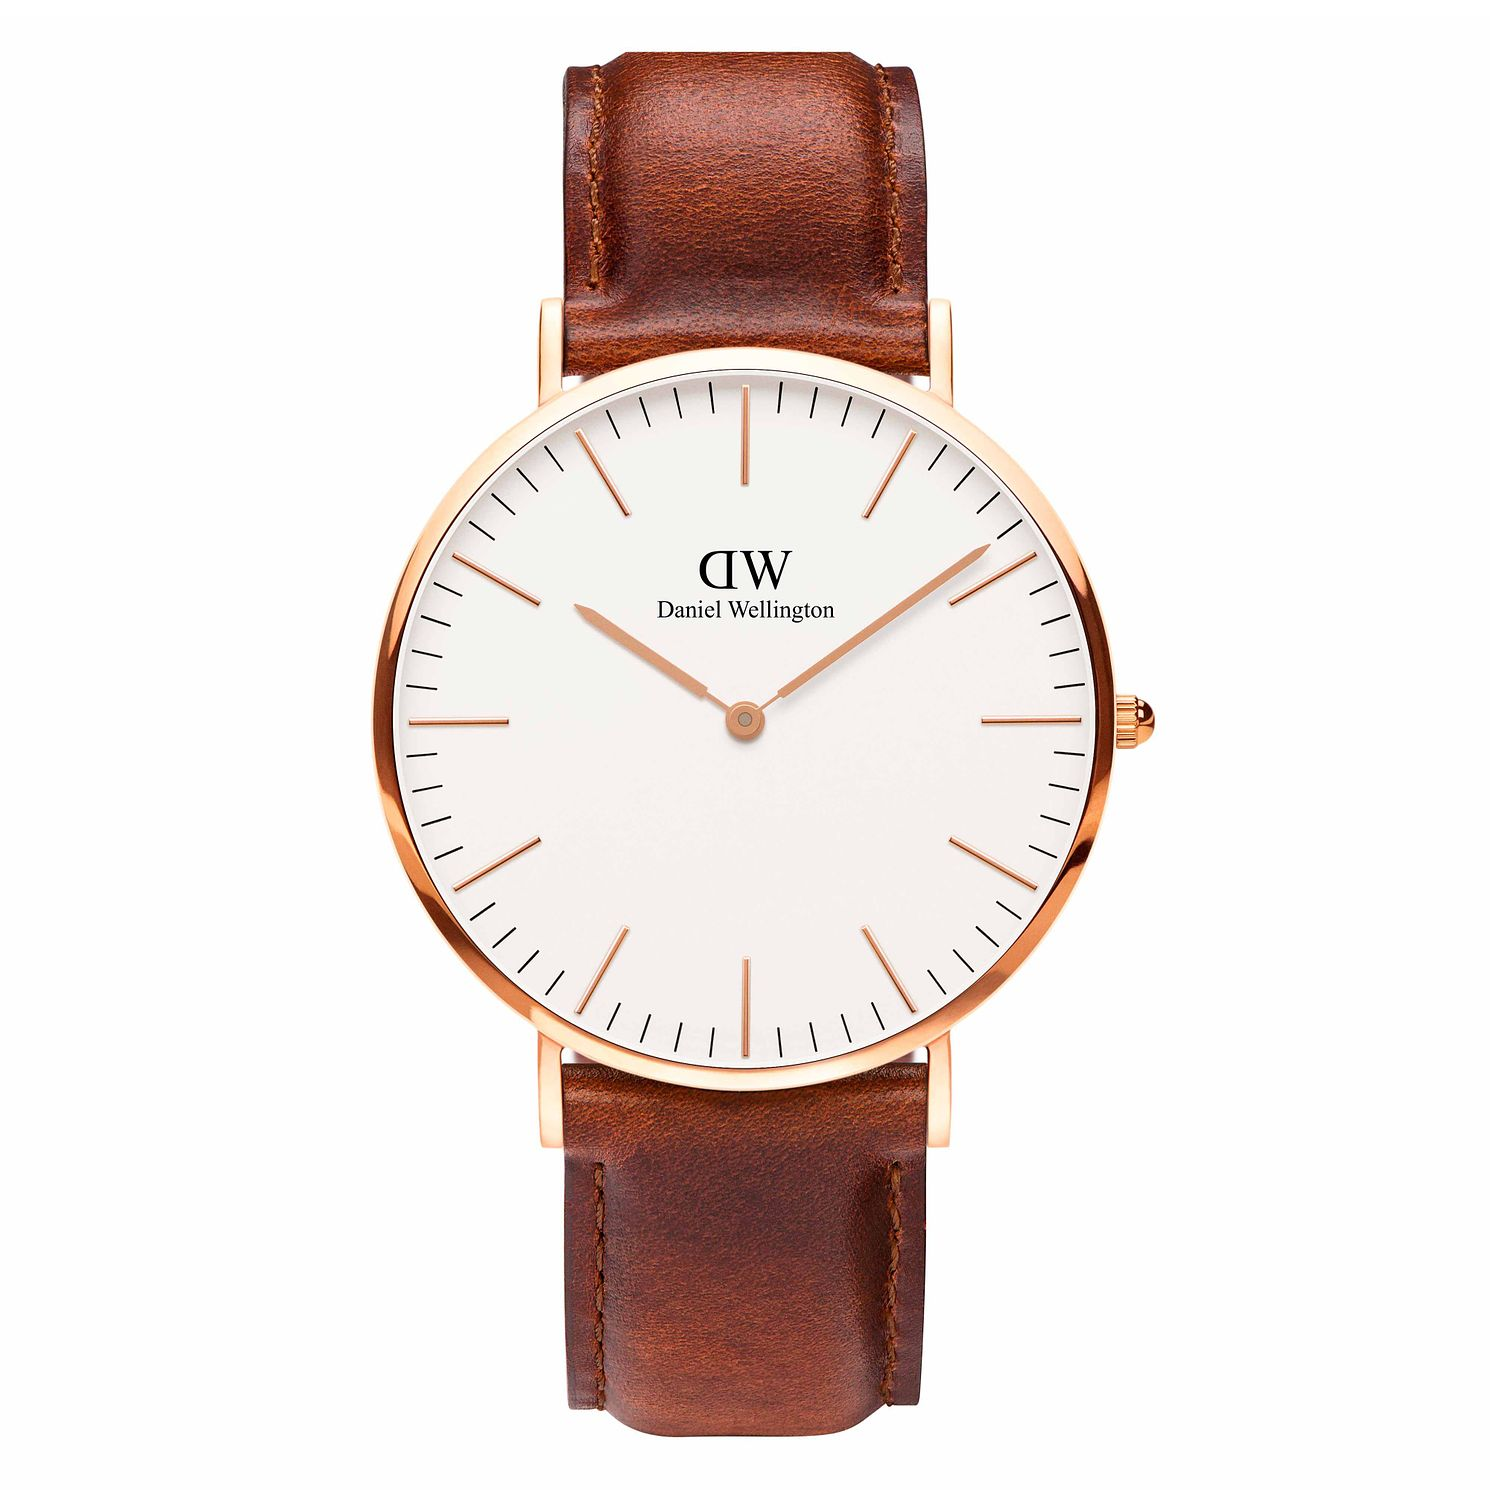 Daniel Wellington Men's St Mawes Brown Leather Strap Watch - Product number 1176749